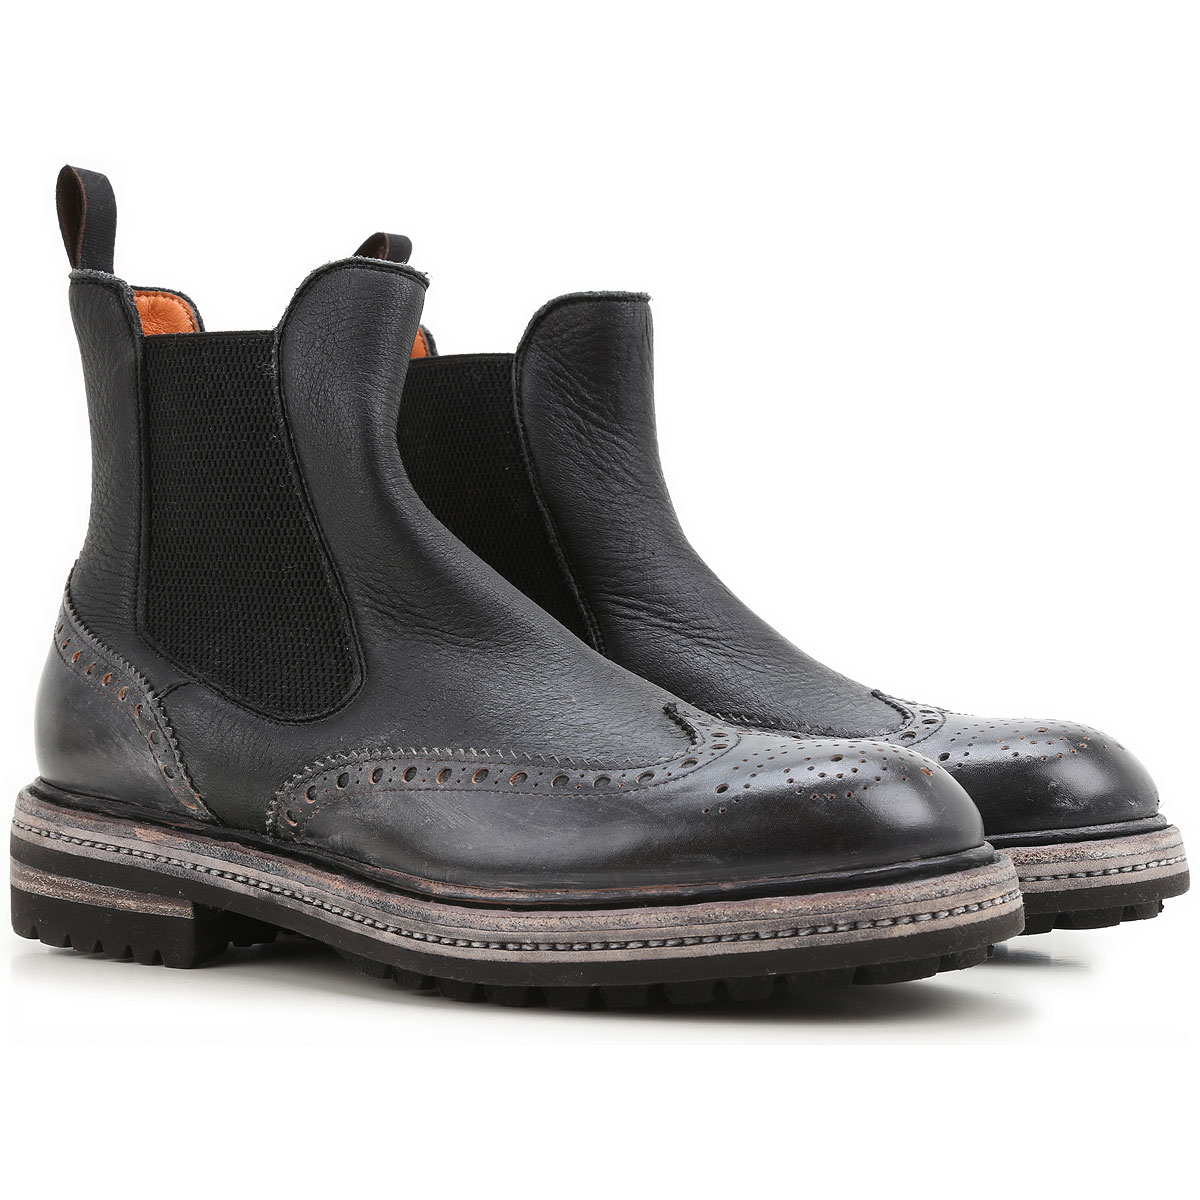 Image of Santoni Boots for Men, Booties On Sale in Outlet, Black, Leather, 2017, 10 9 9.5